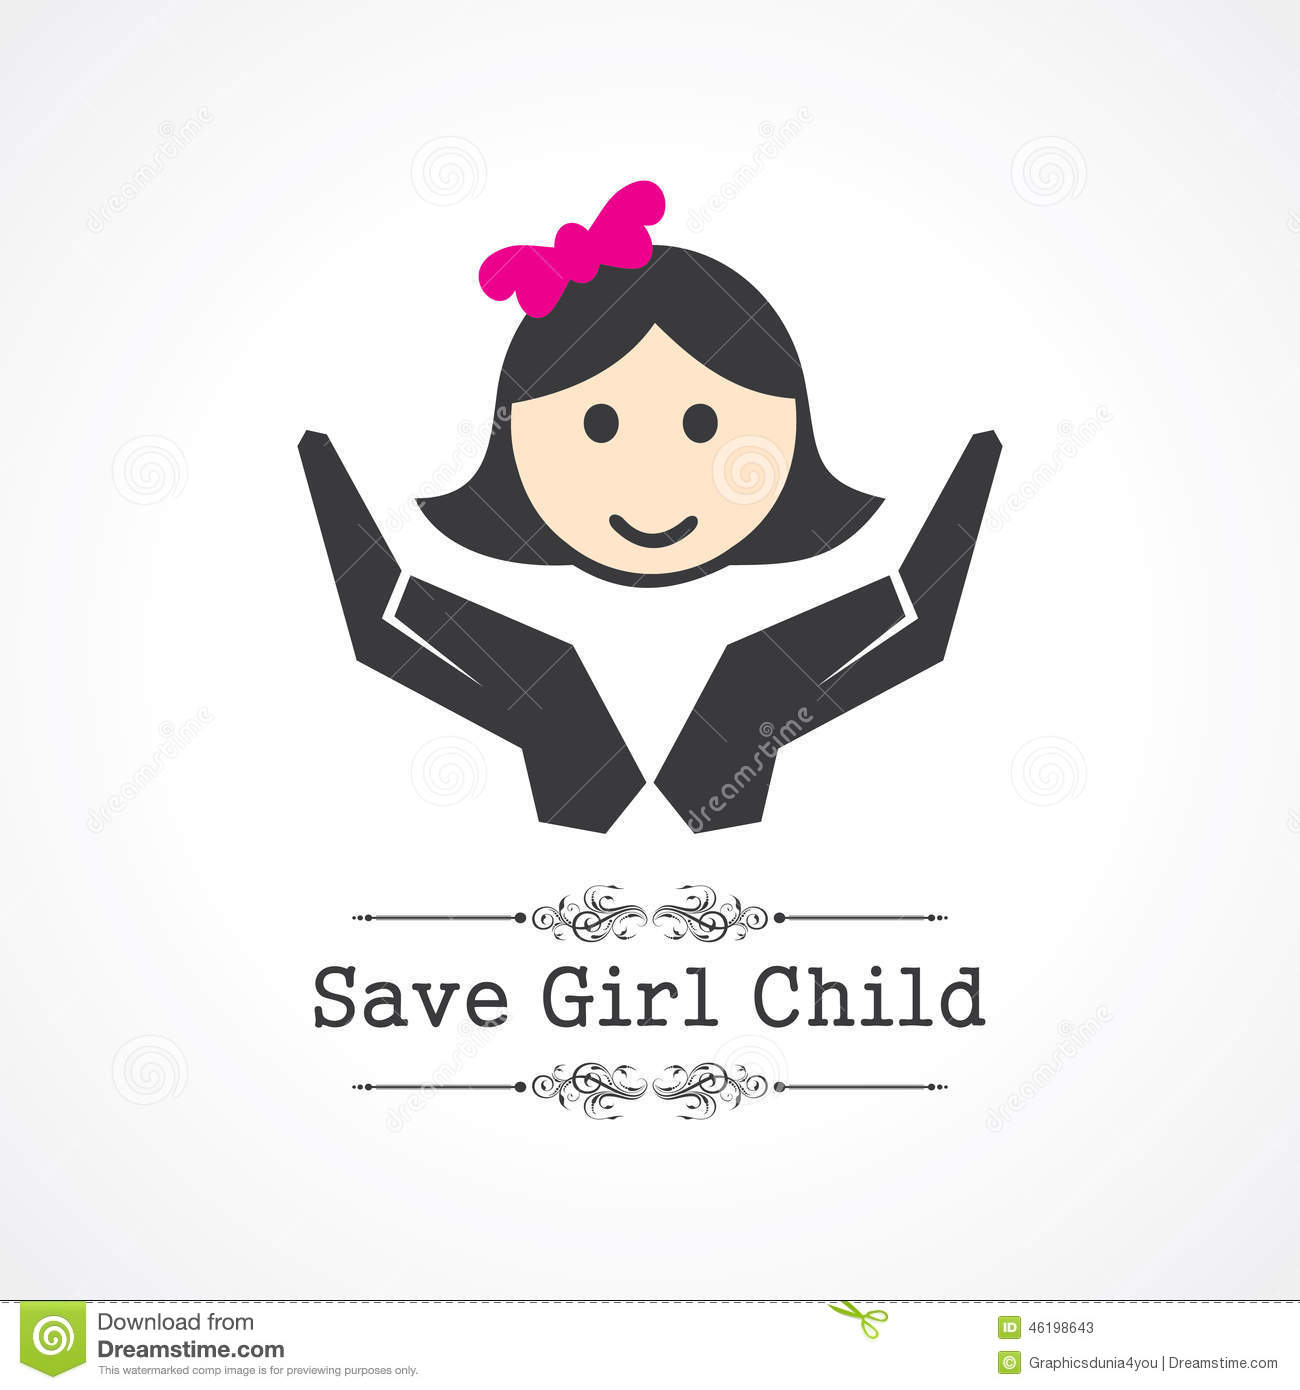 respect girl child An afghan man has been accused of strangling to death a nine-year-old girl who was forcibly given to him by her family as a child bride to pay off a debt.